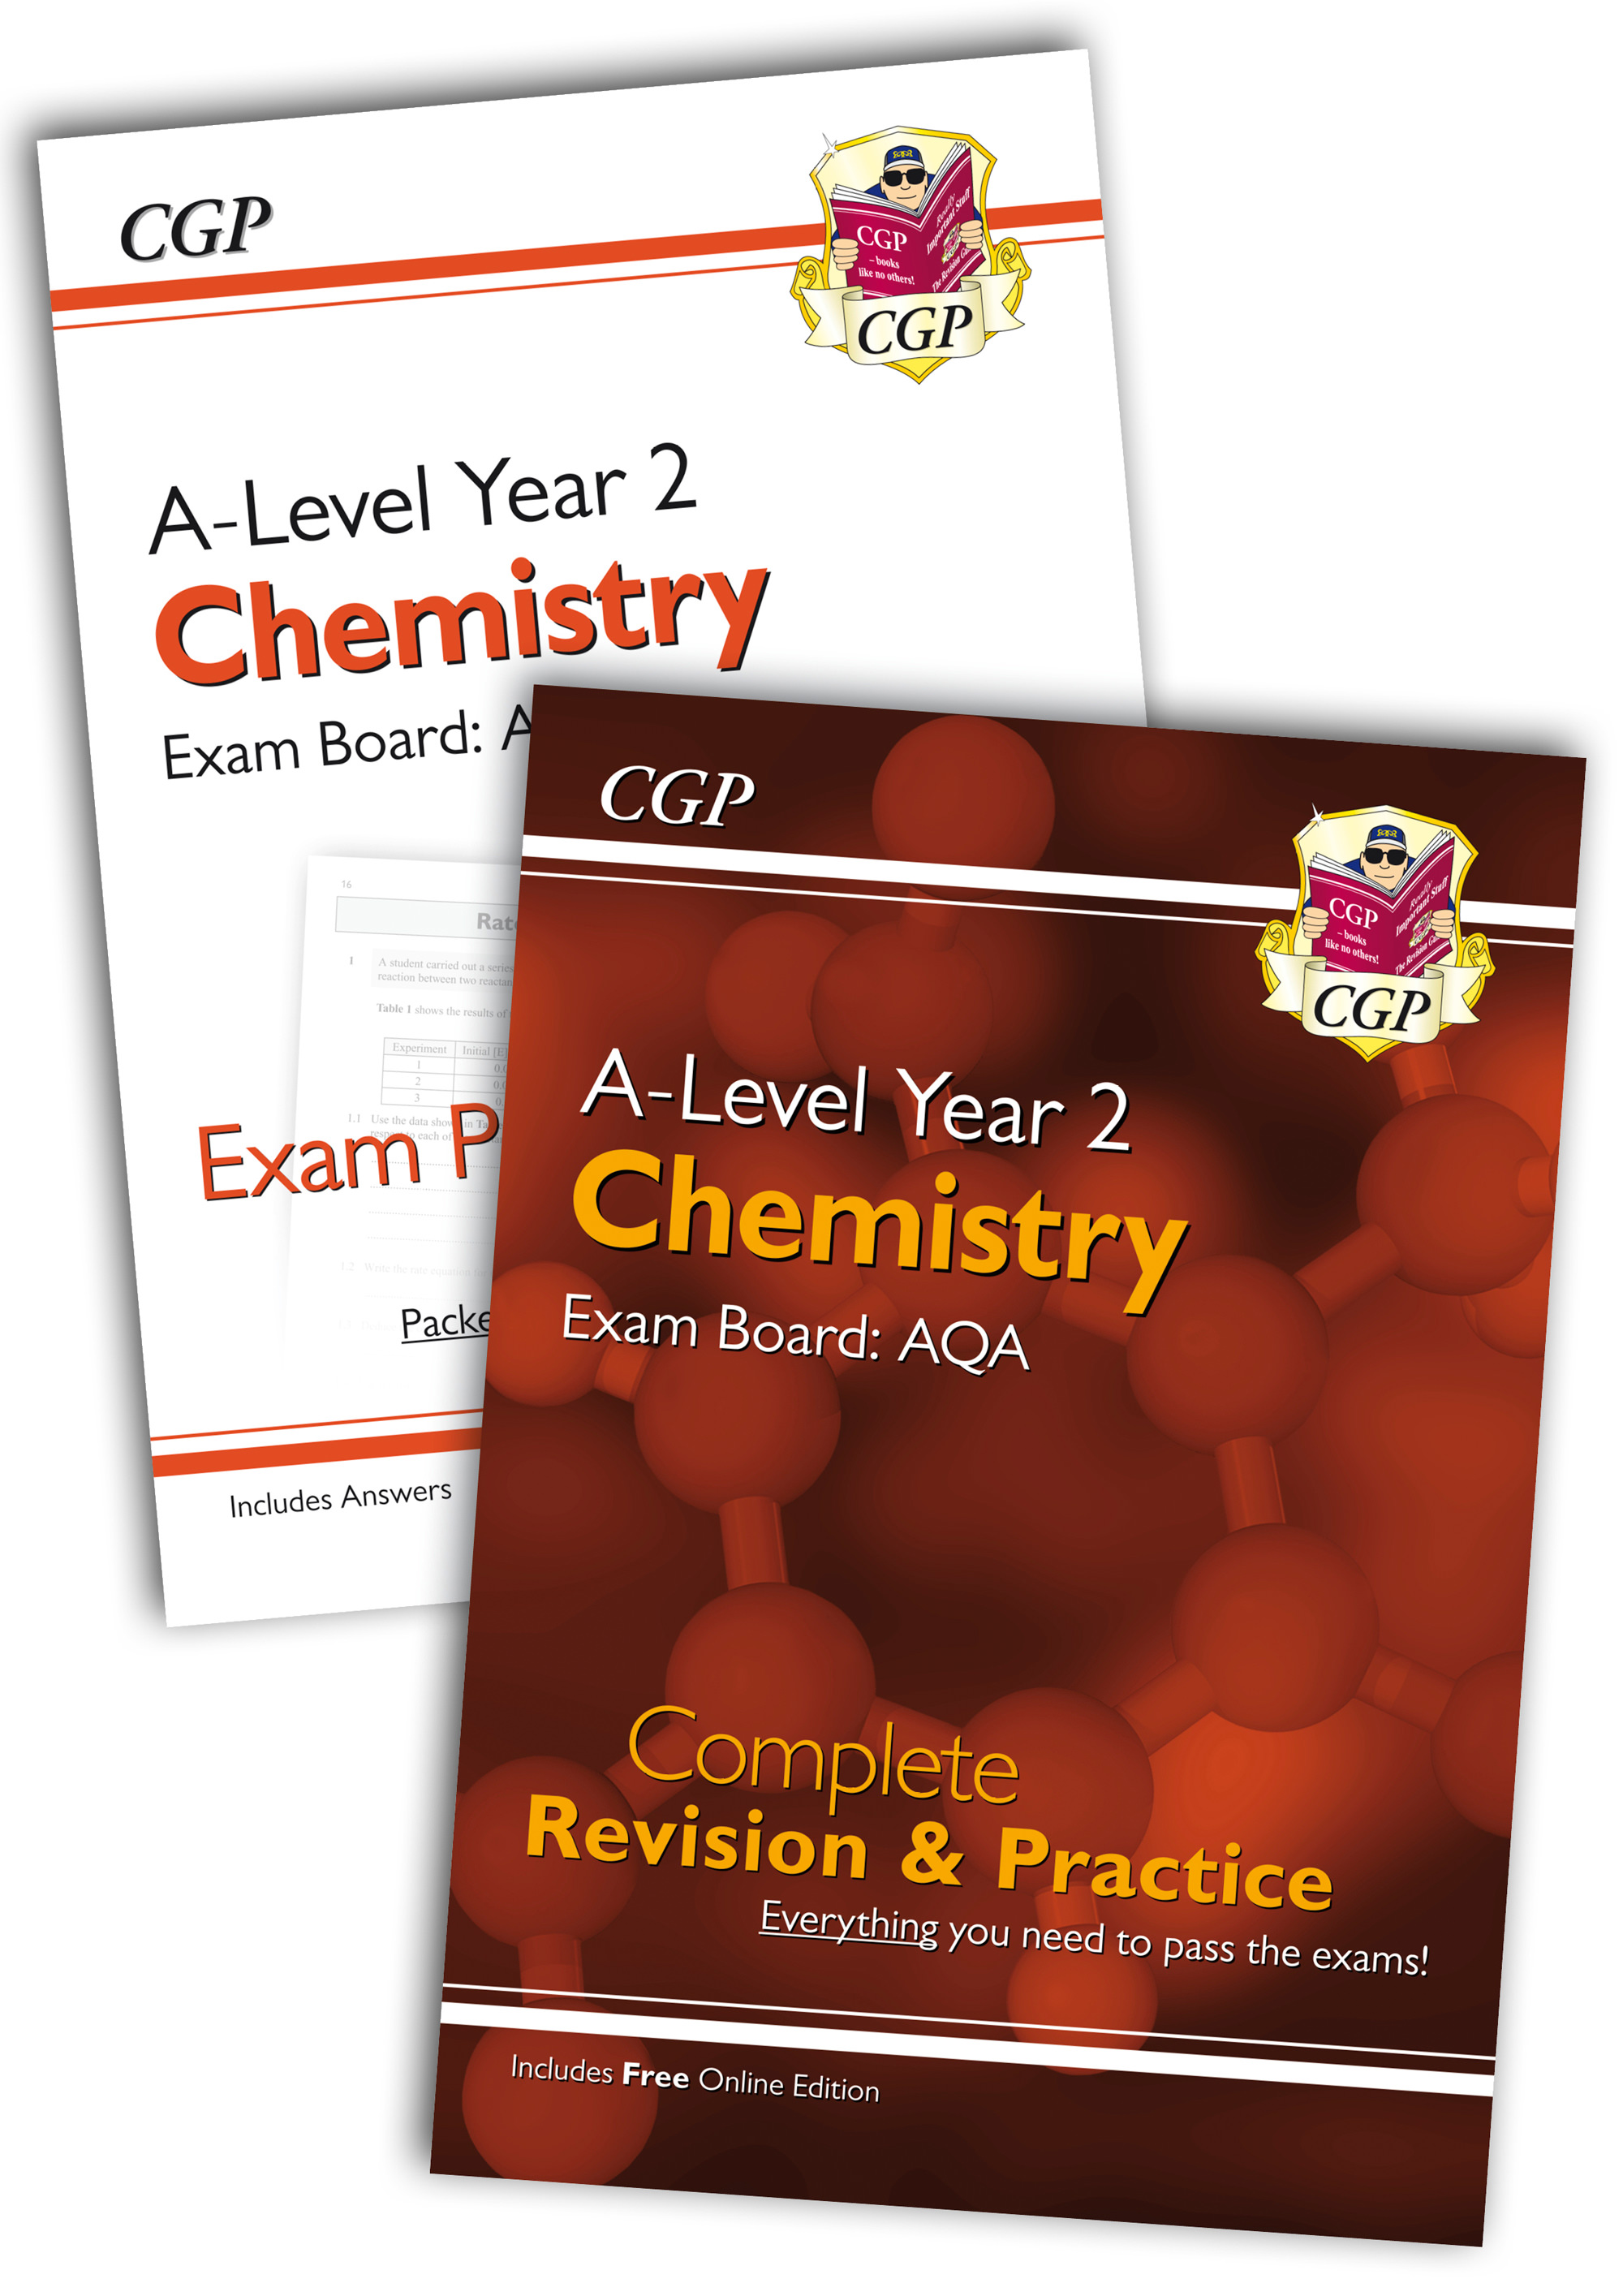 CARQB61 - New 2018 Complete Revision and Exam Practice A-Level Chemistry Bundle: AQA Year 2